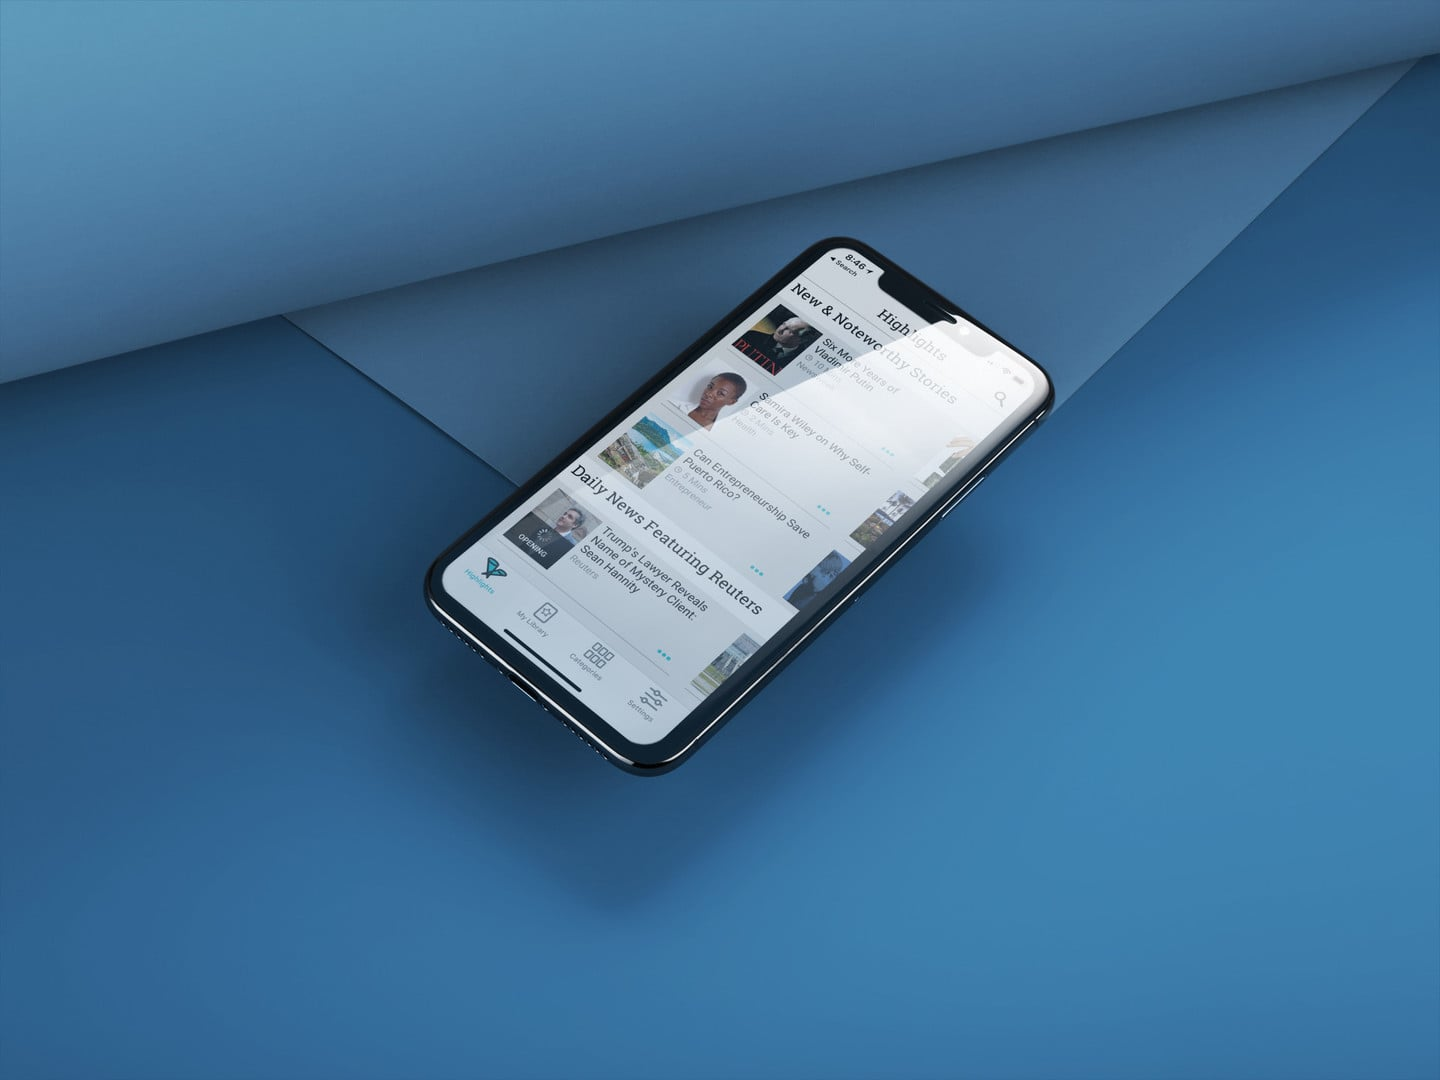 Apple expected to launch news subscriptions by early 2019